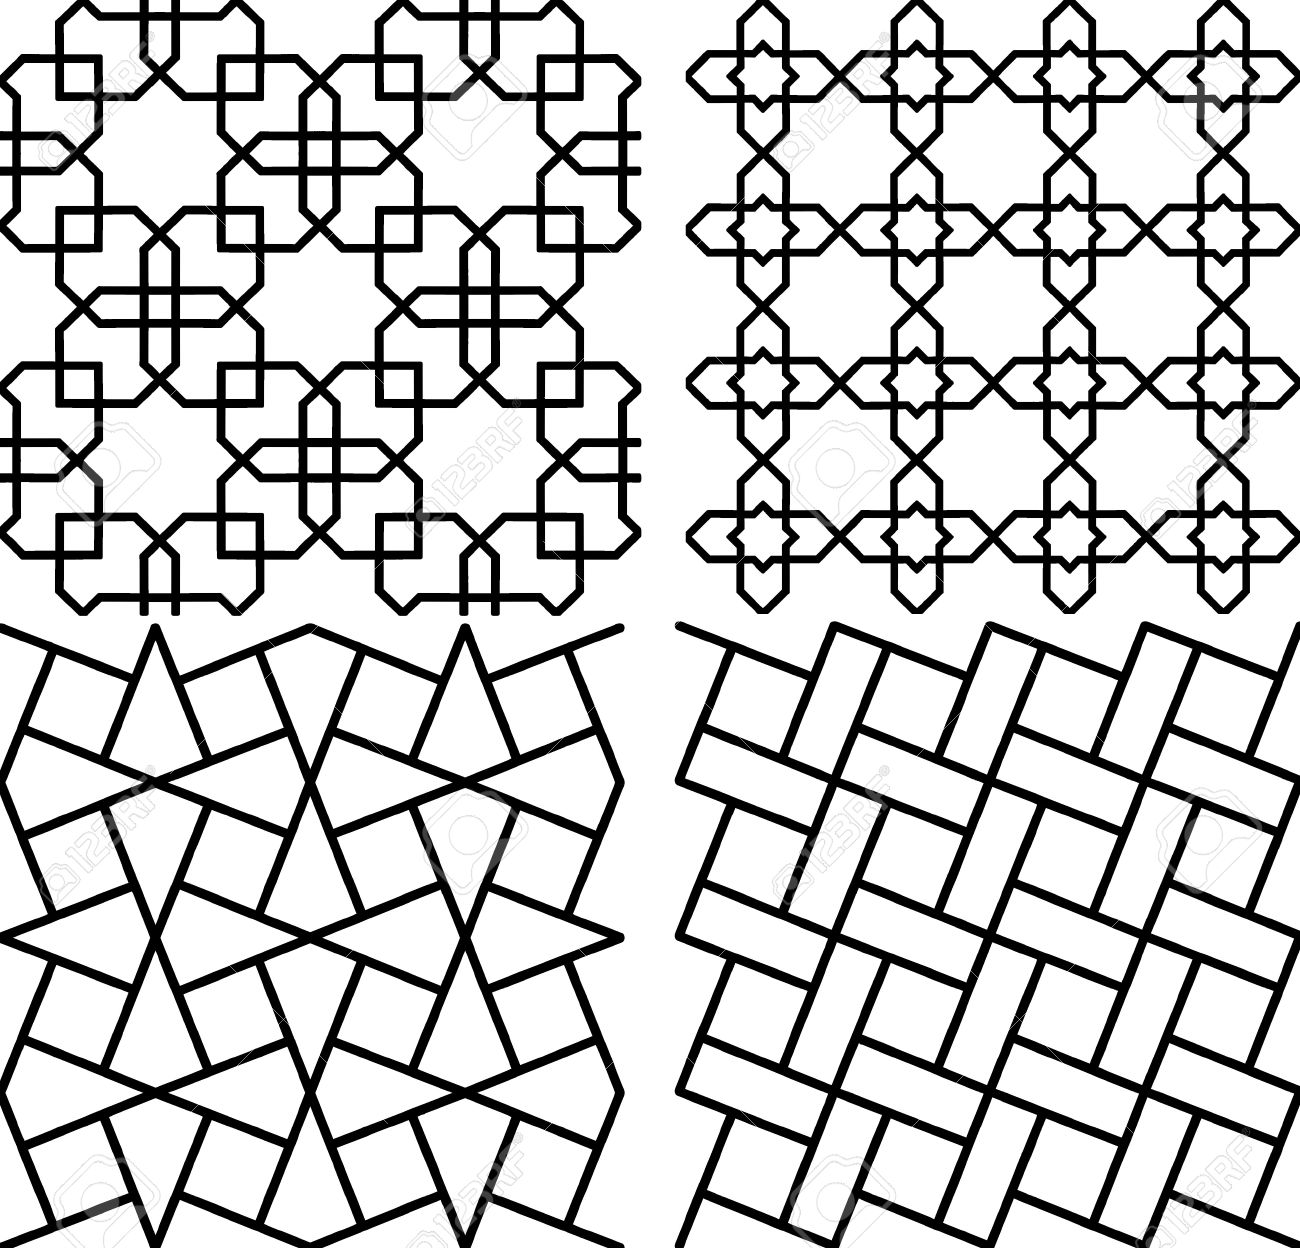 4 Simple Persian Islamic Pattern Royalty Free Cliparts, Vectors ... for Simple Islamic Designs  29jwn